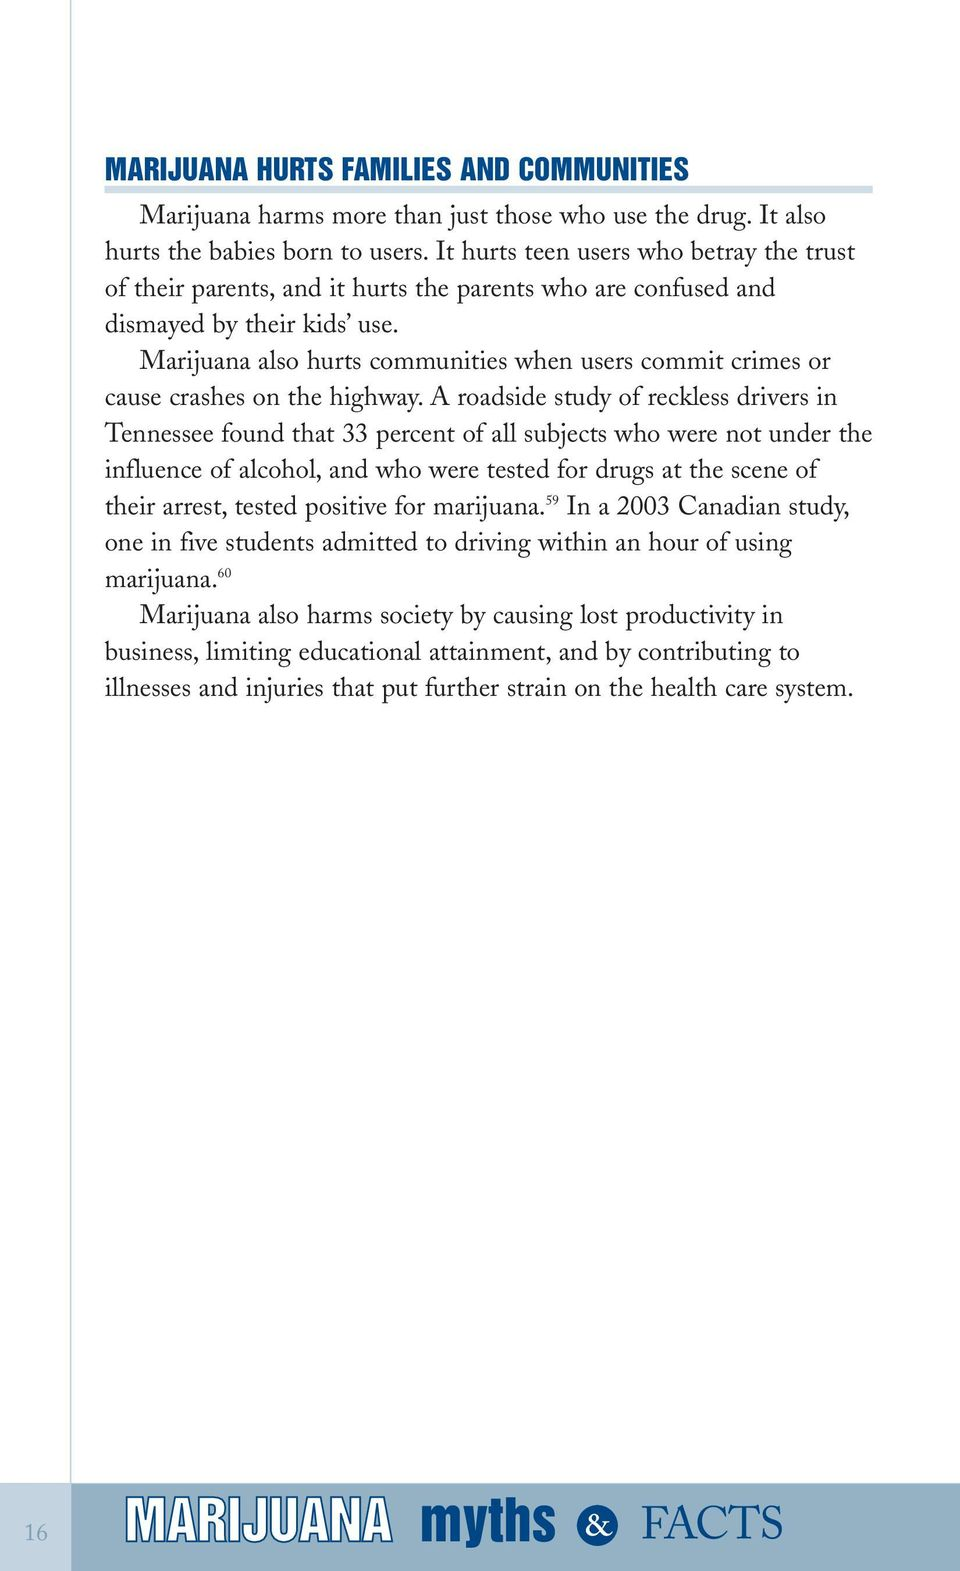 Marijuana also hurts communities when users commit crimes or cause crashes on the highway.